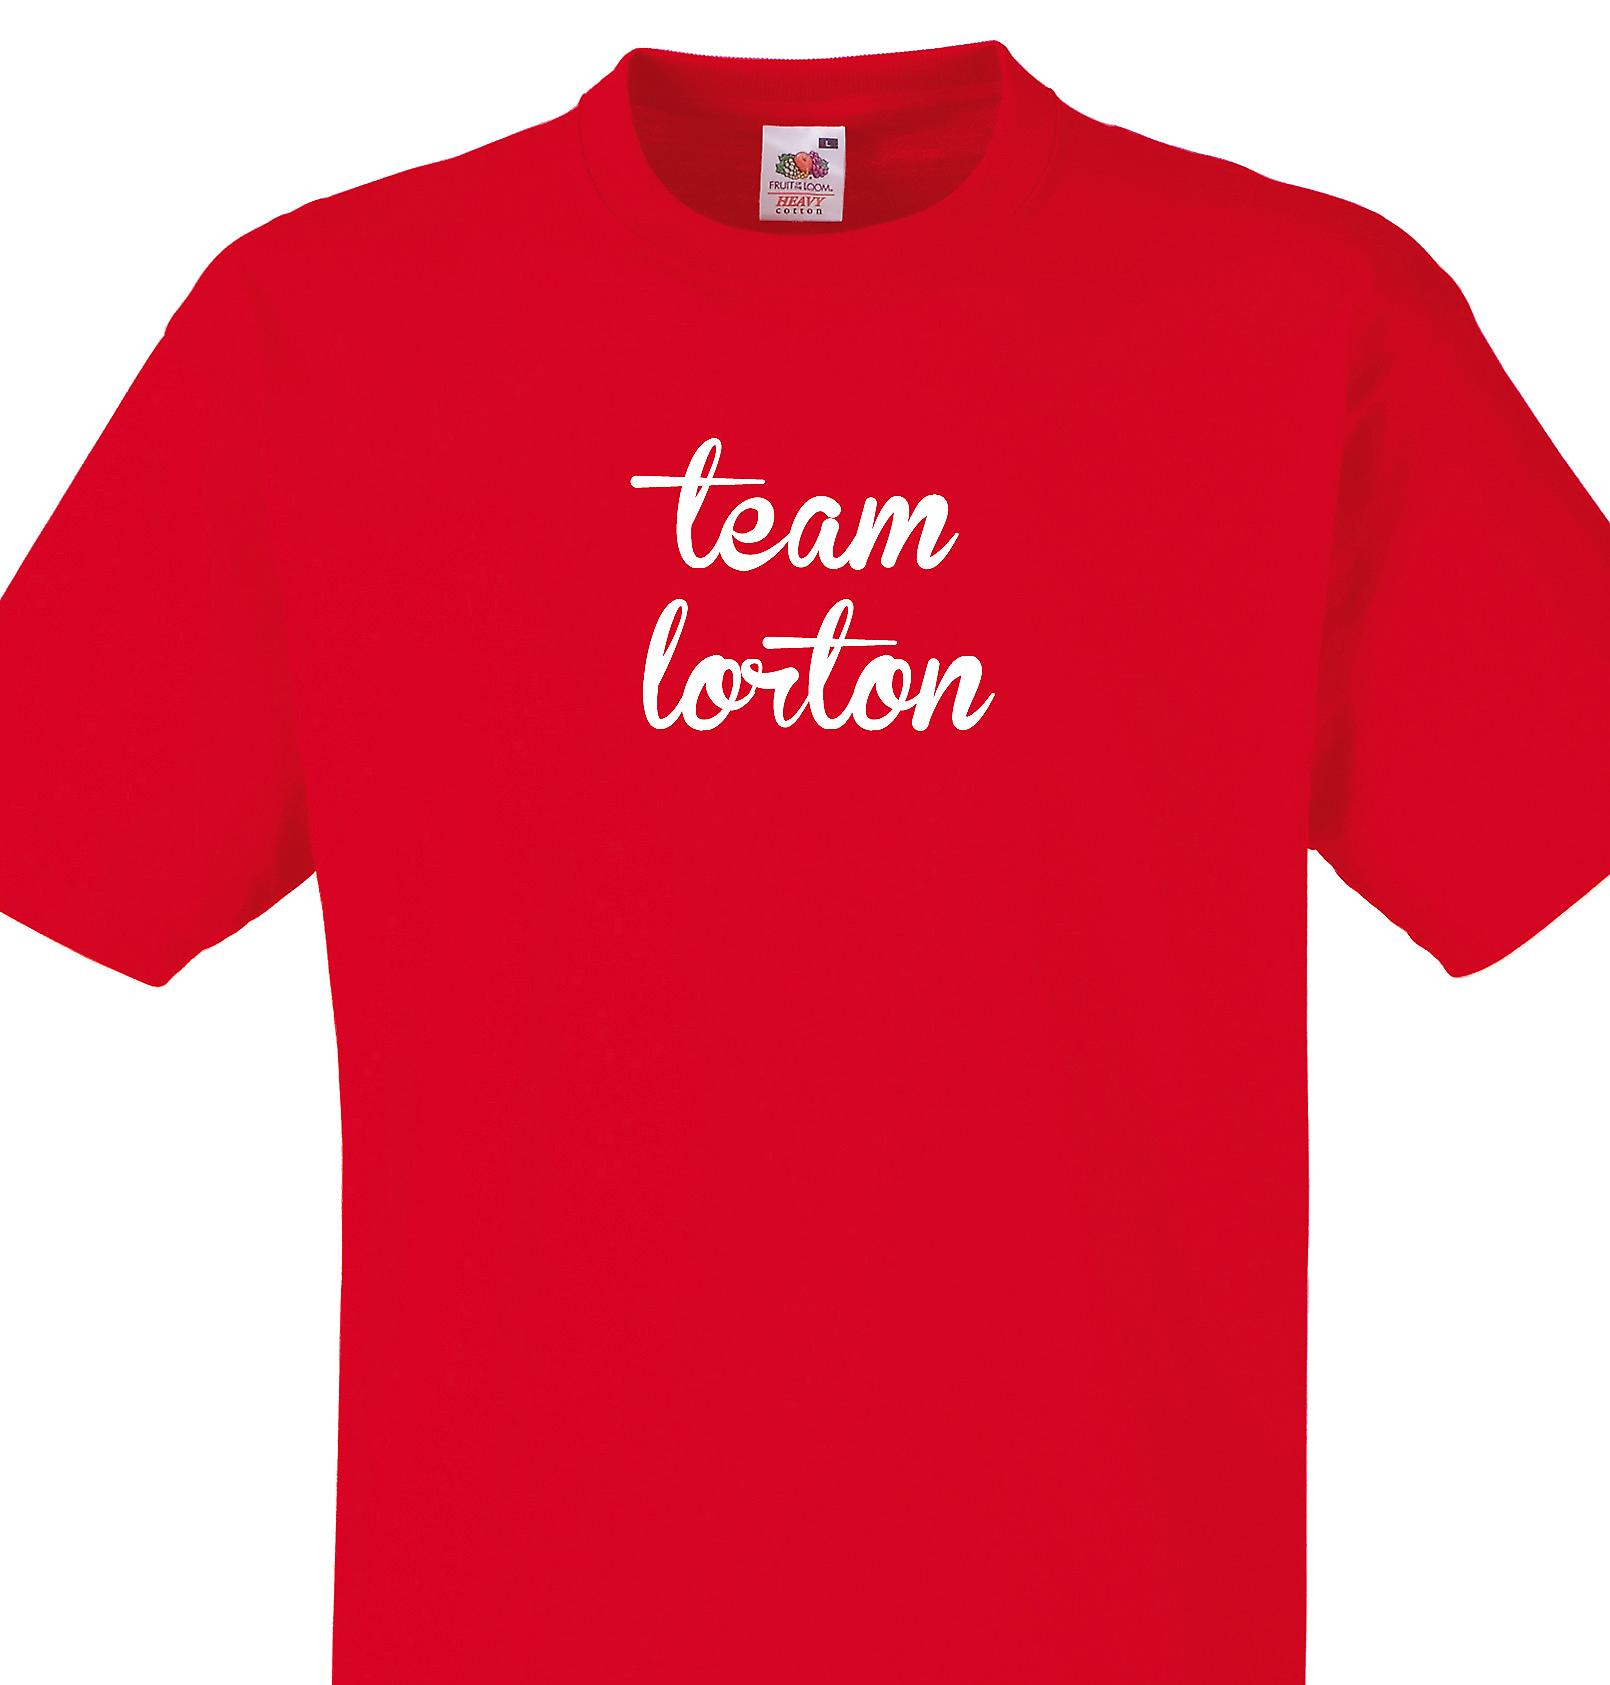 Team Lorton Red T shirt